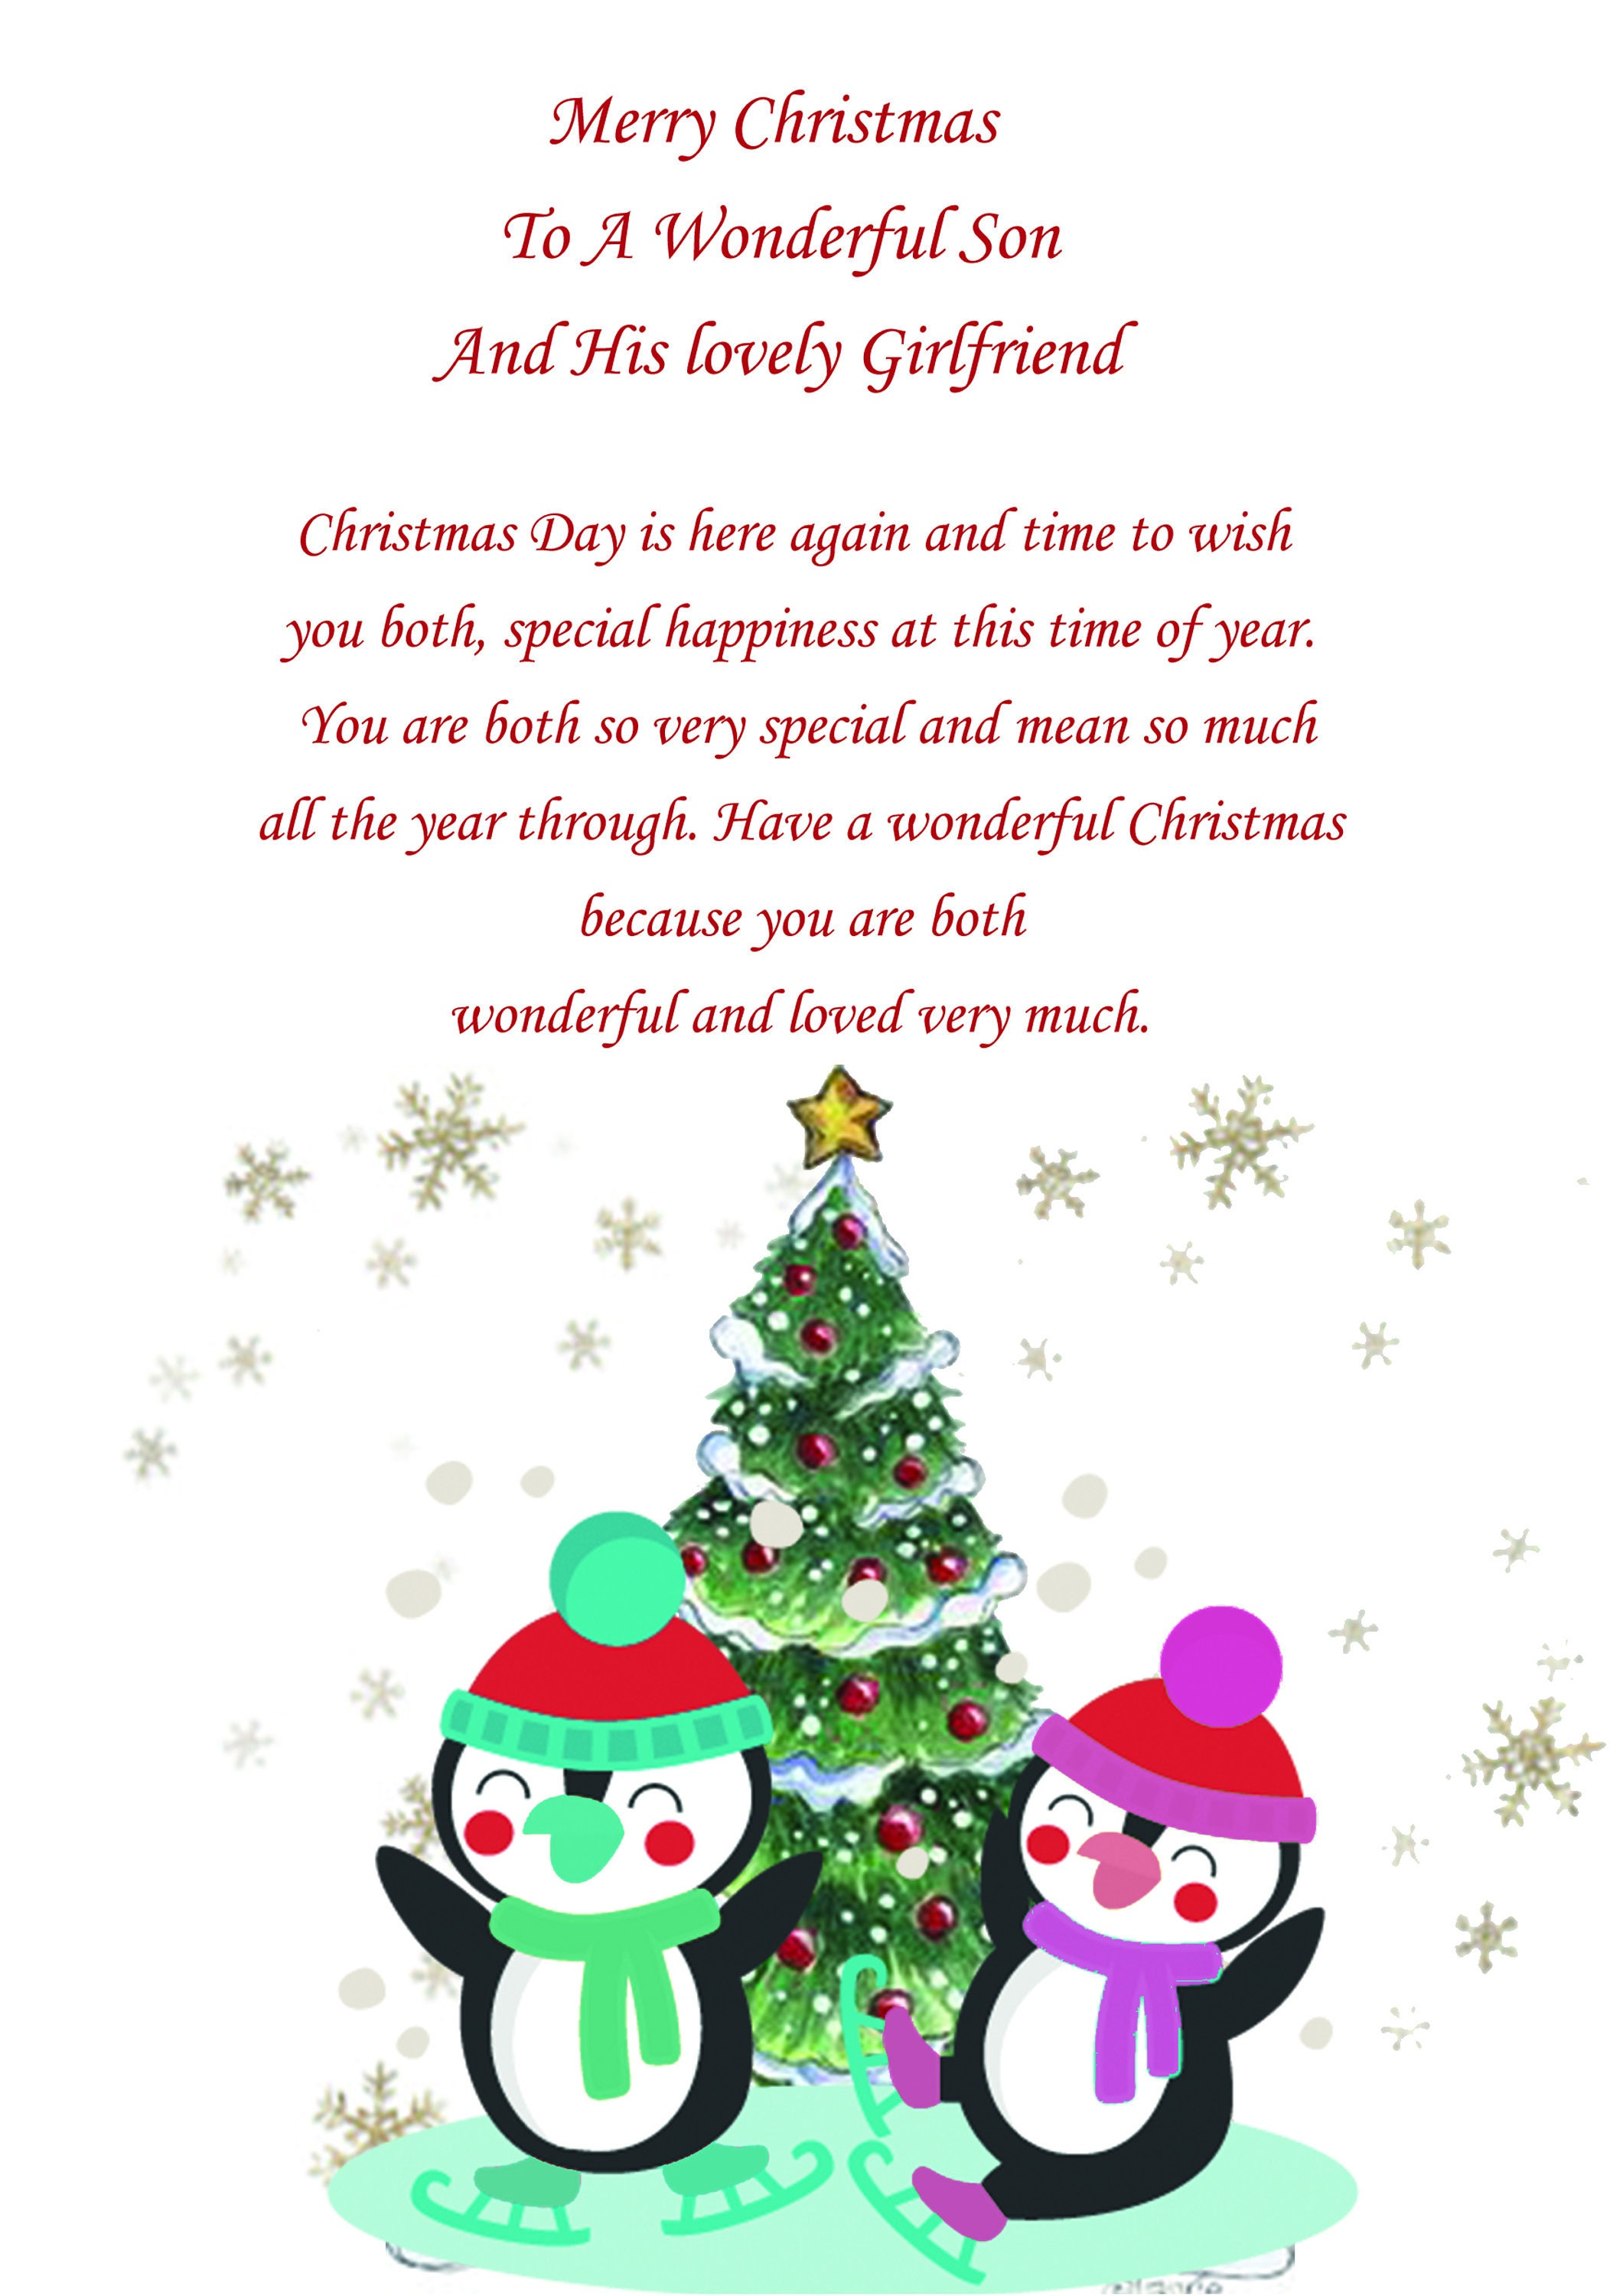 Son And Girlfriend Christmas Card Cute | Etsy